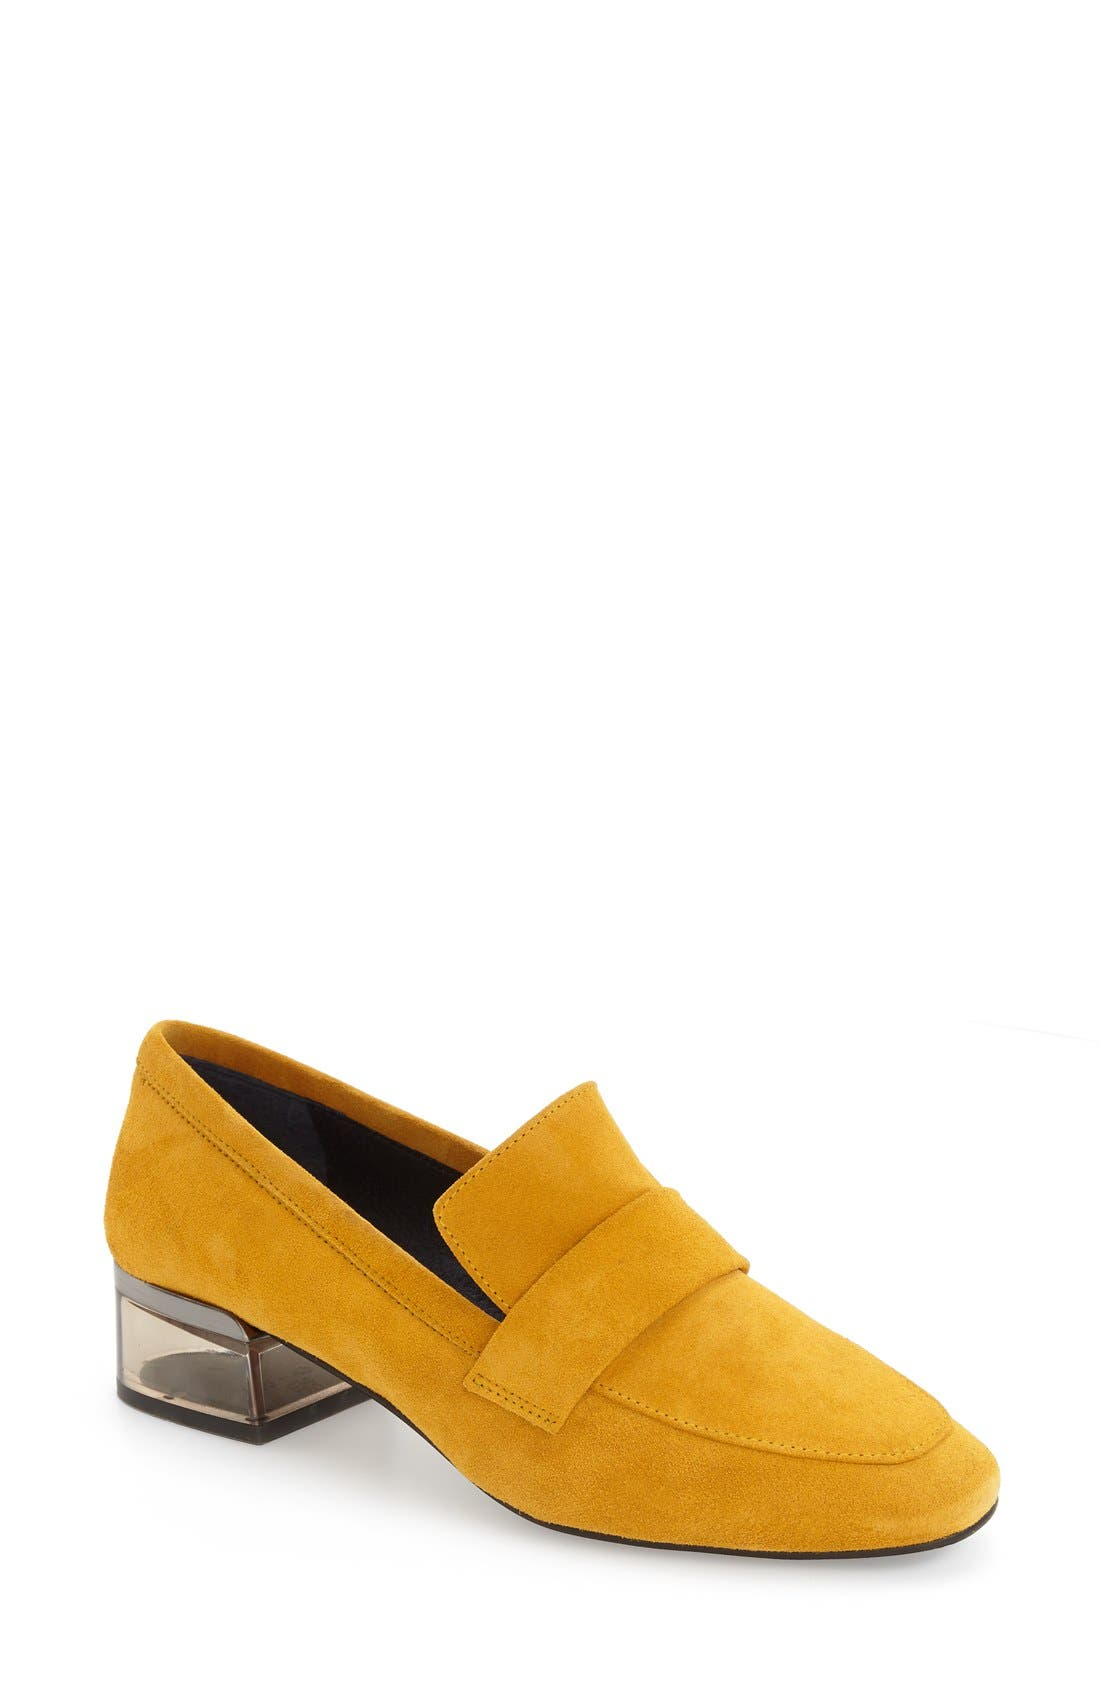 Main Image - Topshop 'Karrot' Clear Heel Loafer (Women)